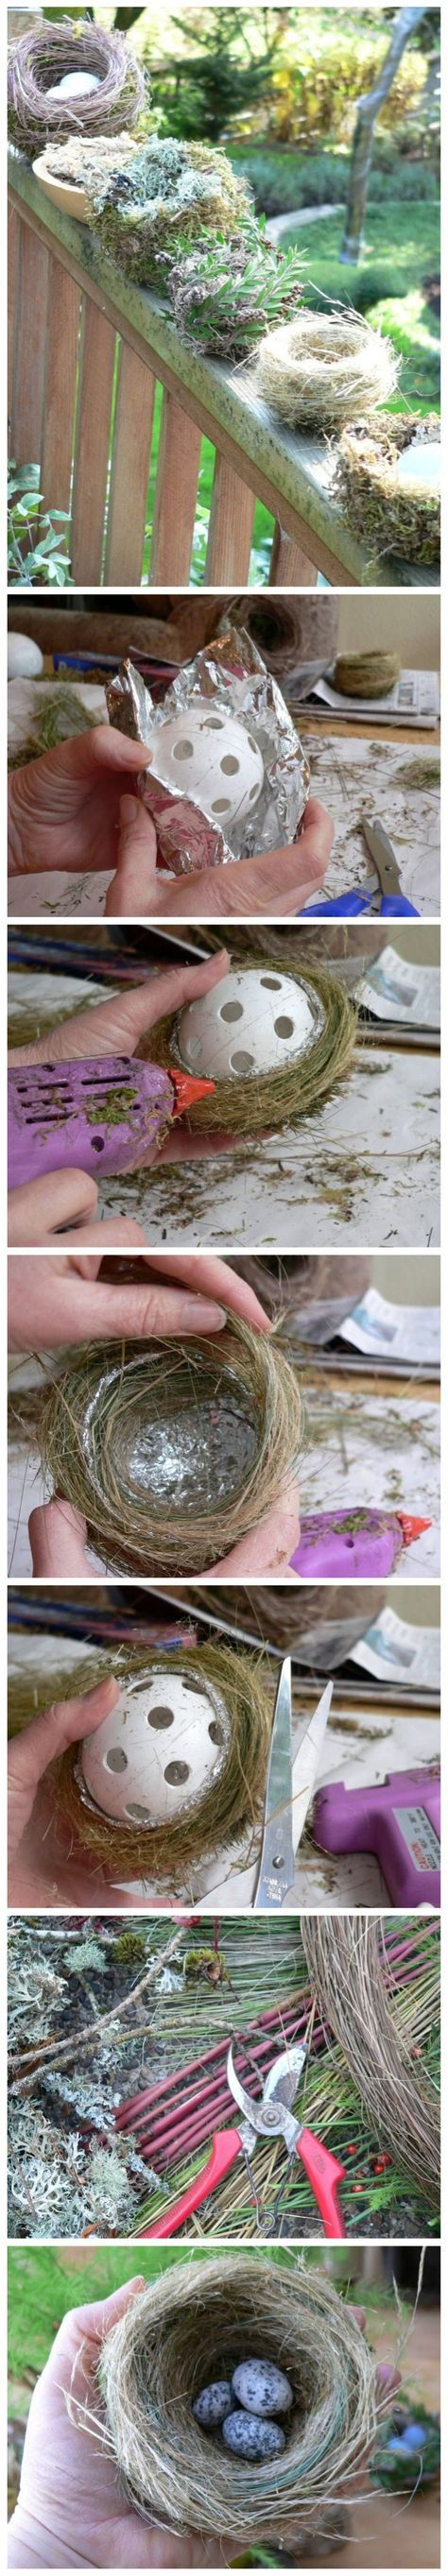 Outdoor easter decorations pinterest - How To Make Your Own Decorative Bird Nests The Pecks Easter Decoreaster